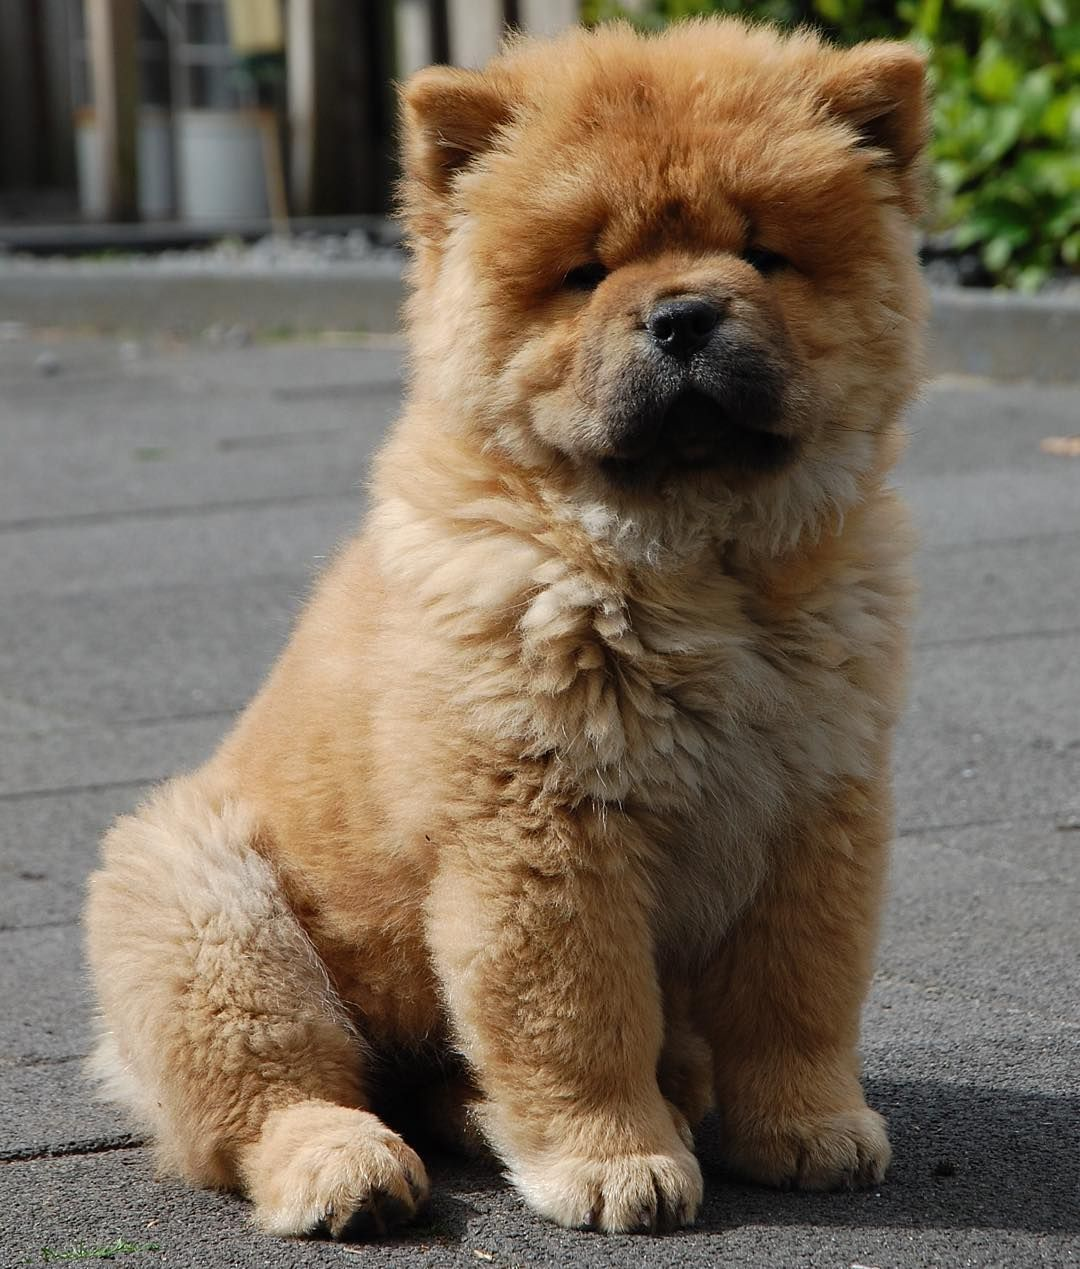 Throw Back To When Moos Was A Little Chow Chow Puppy Tbt